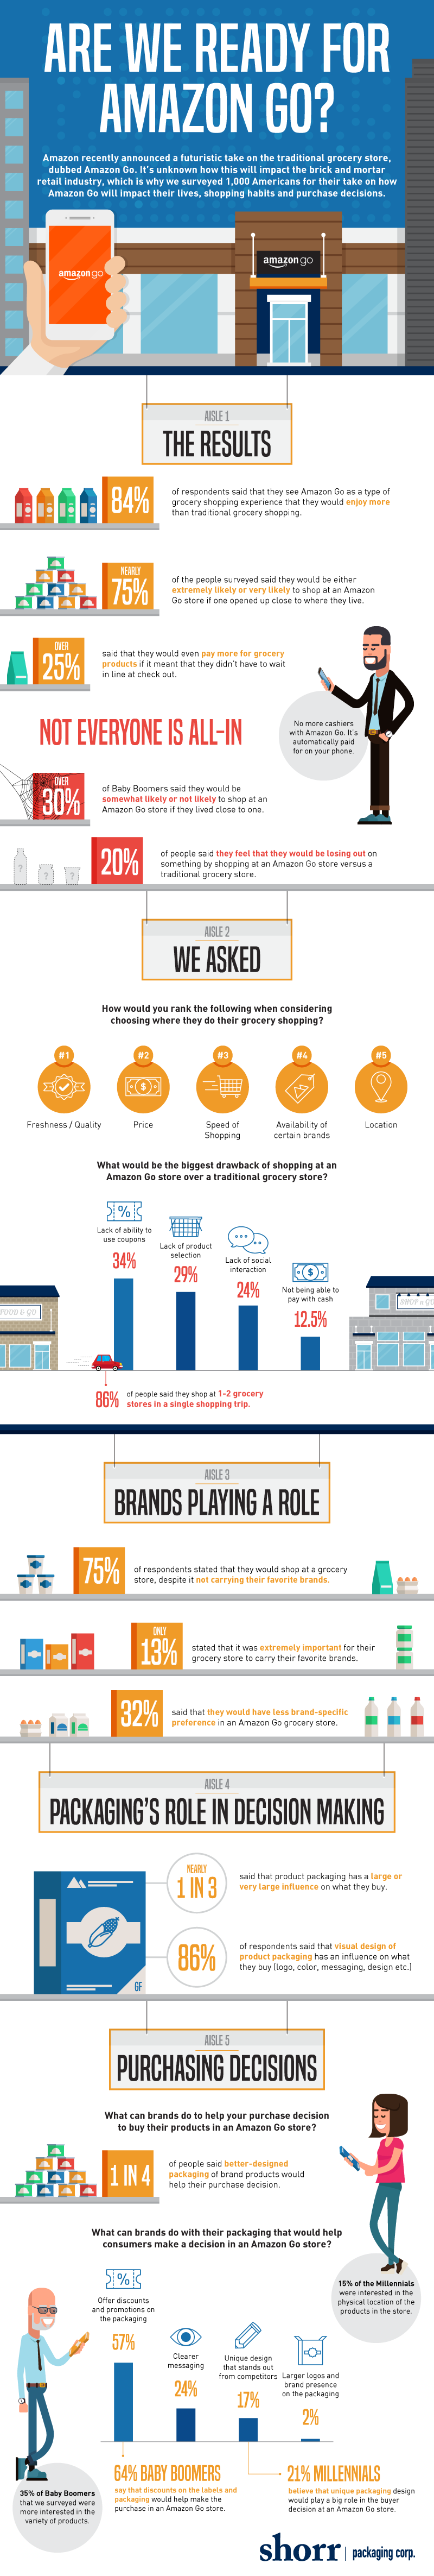 Are We Ready for Amazon Go? #Infographic